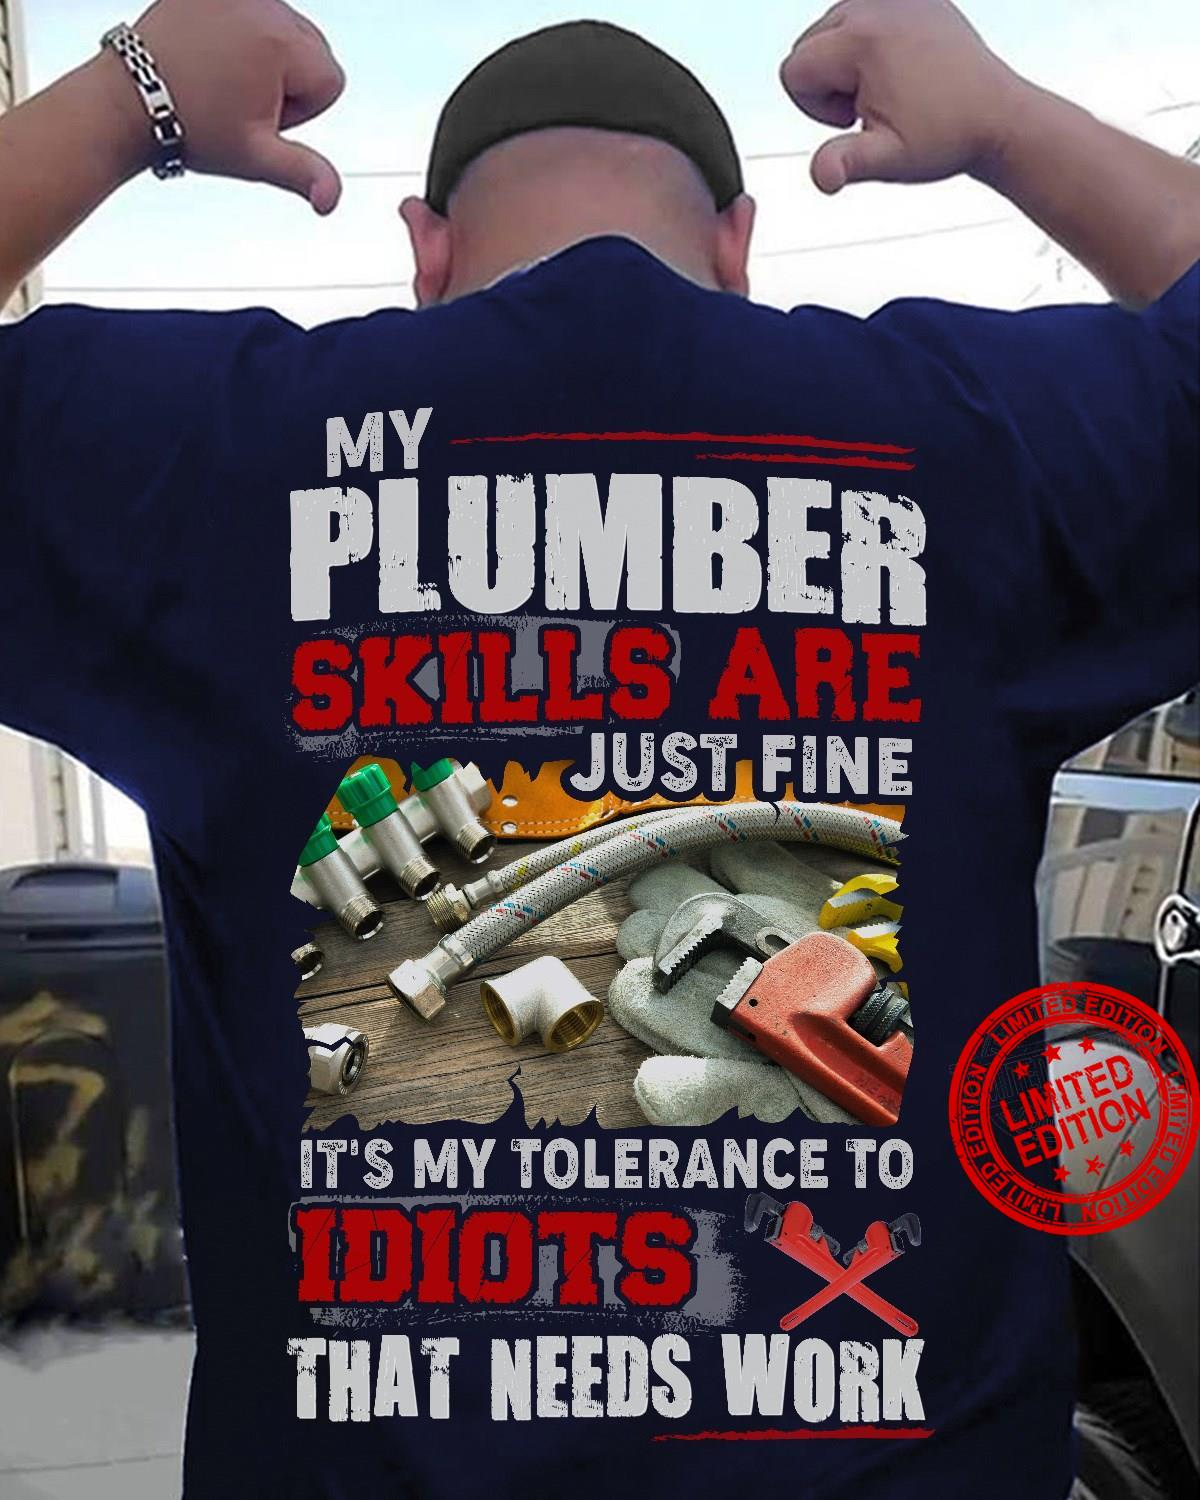 My Plumber Skills Are Just Fine It's My Tolerance To Idiots That Needs Work Shirt